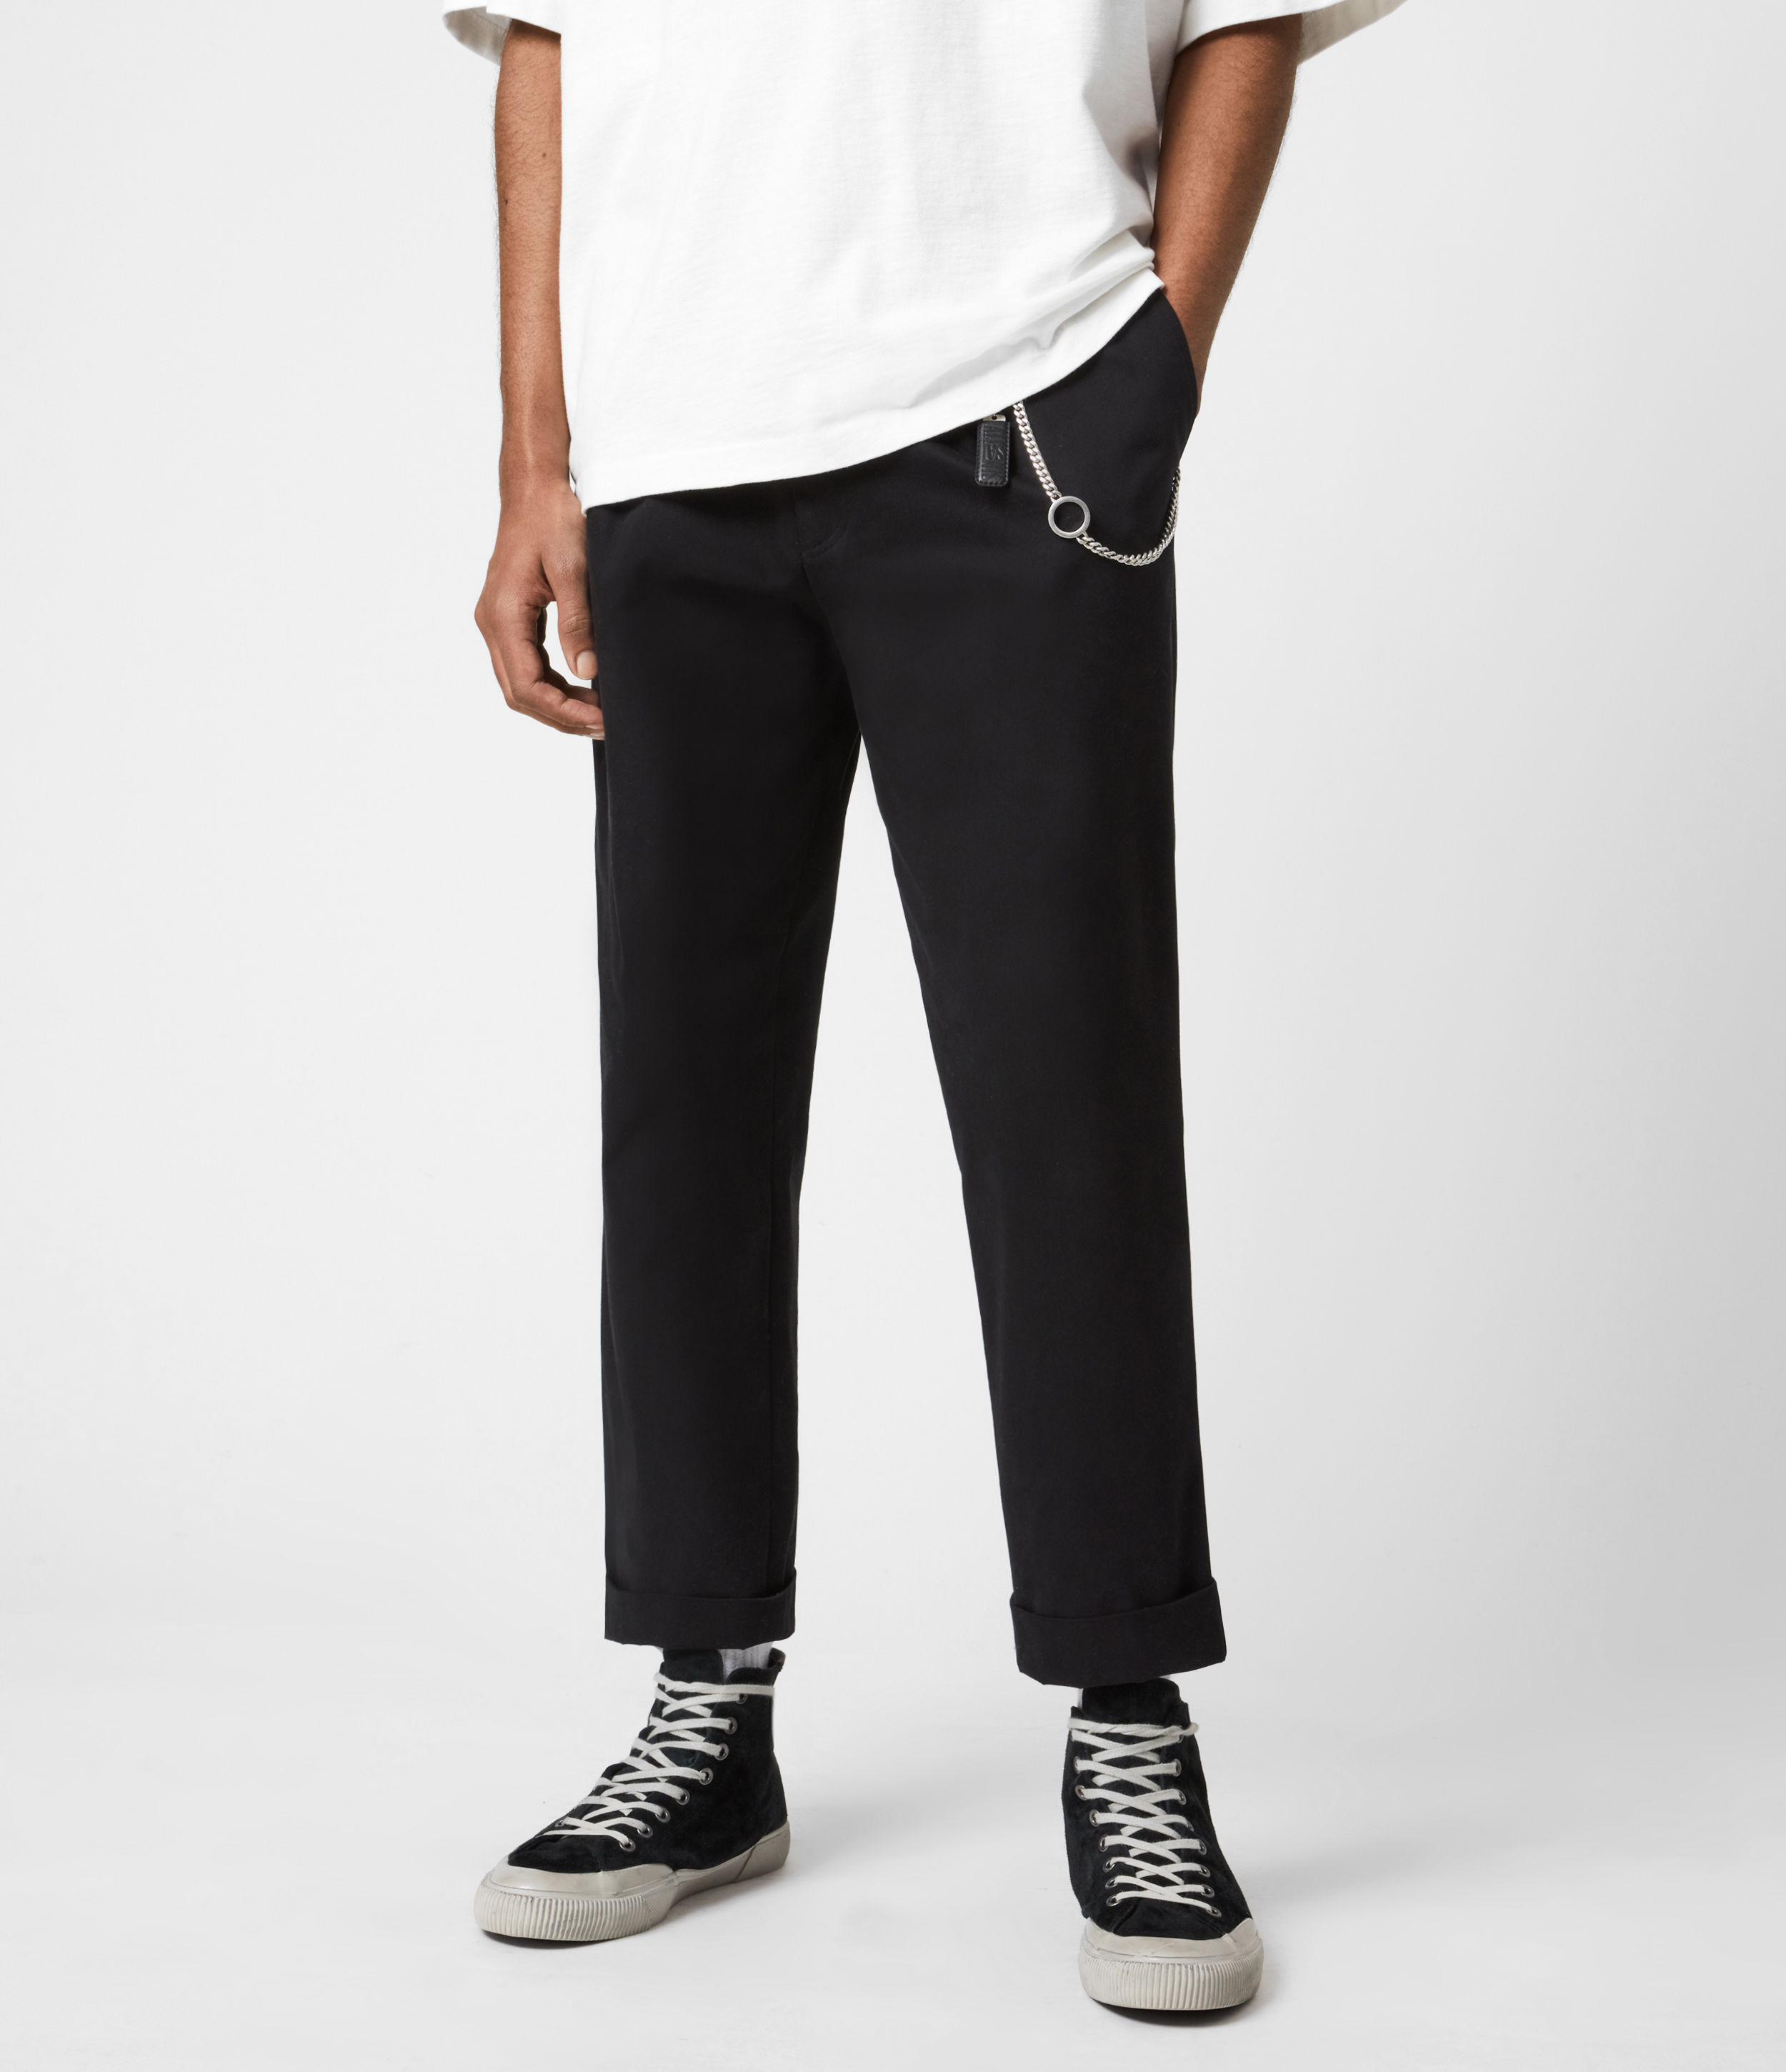 AllSaints Mens Garrett Cropped Straight Trousers, Black, Size: 28